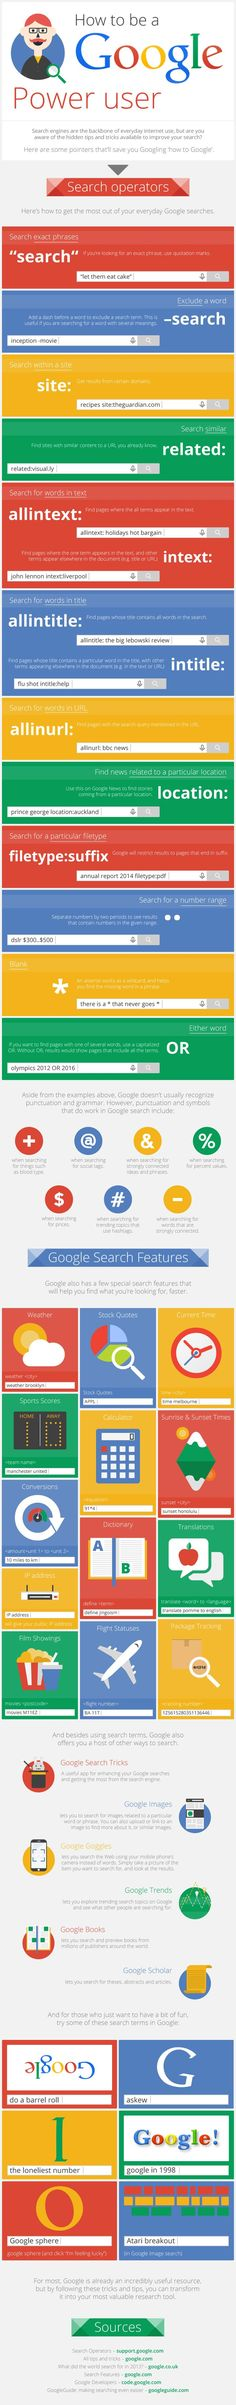 How to Search Google Like a Pro - #Google #infographic